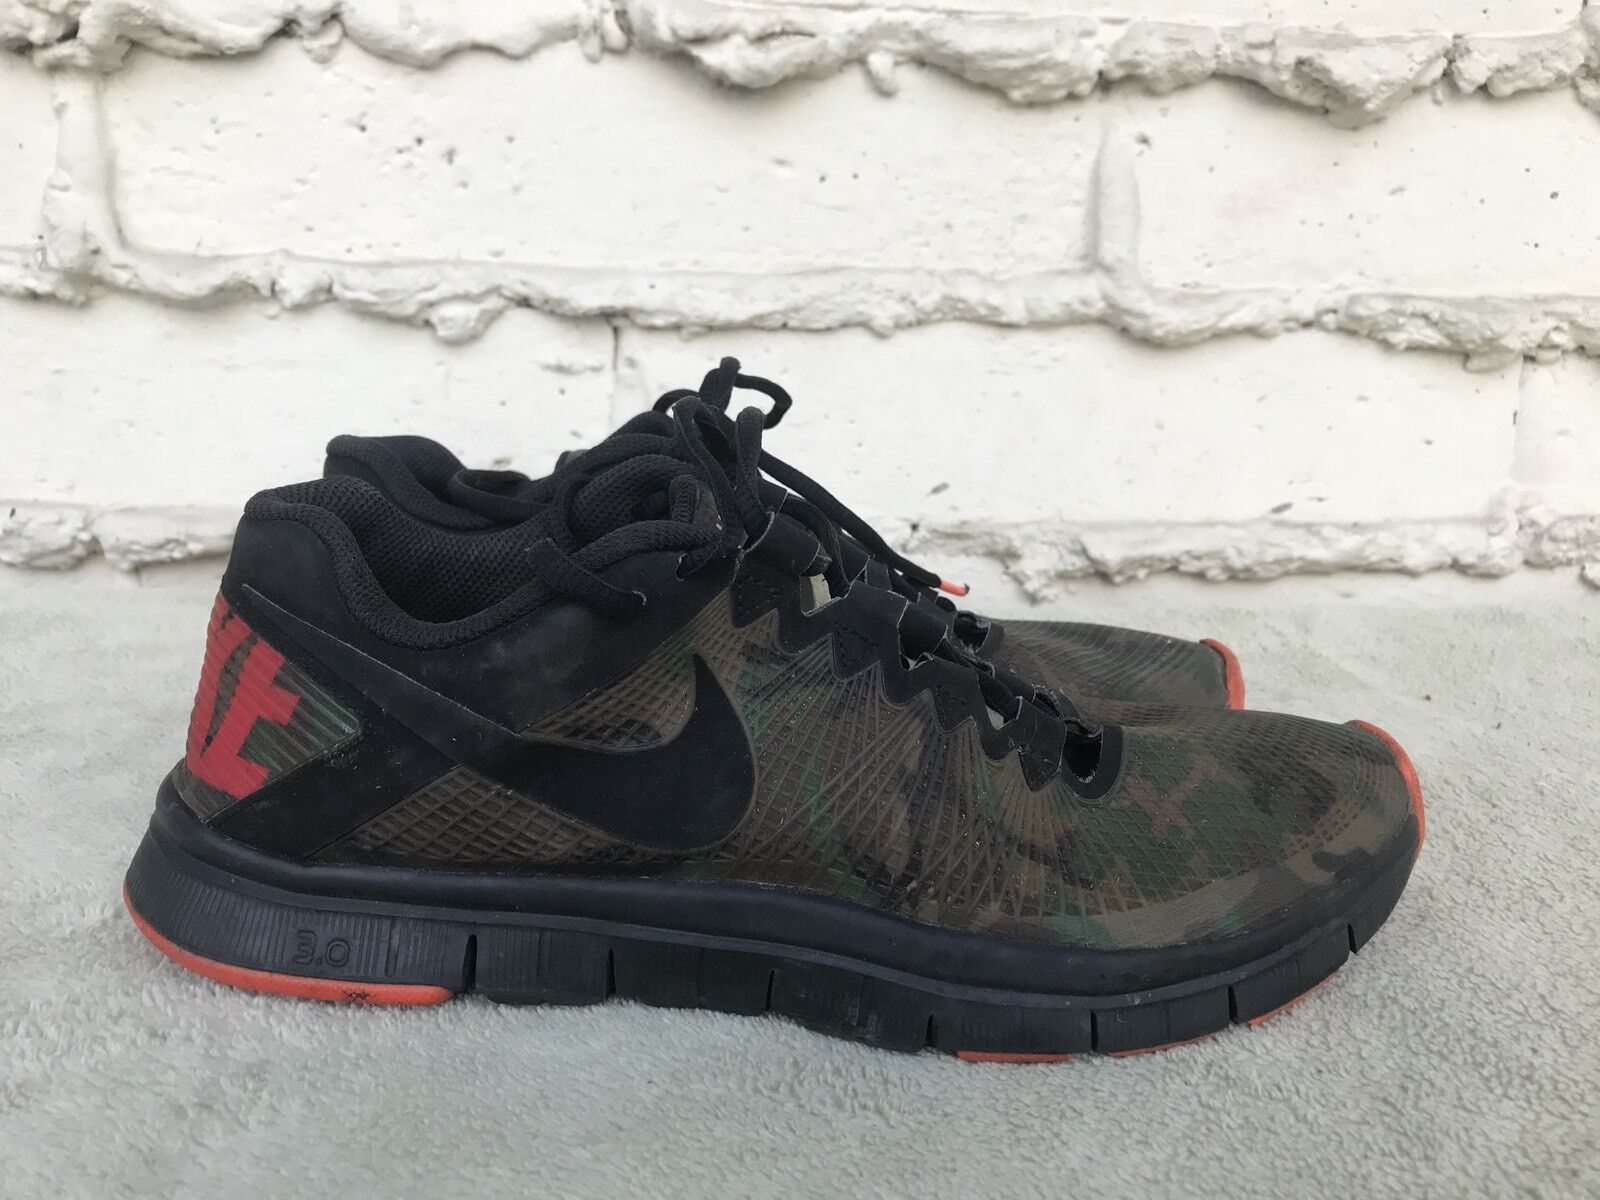 RARE Nike Free Trainer 3.0 Camo Running Shoes 625164-300 Mens US 9.5